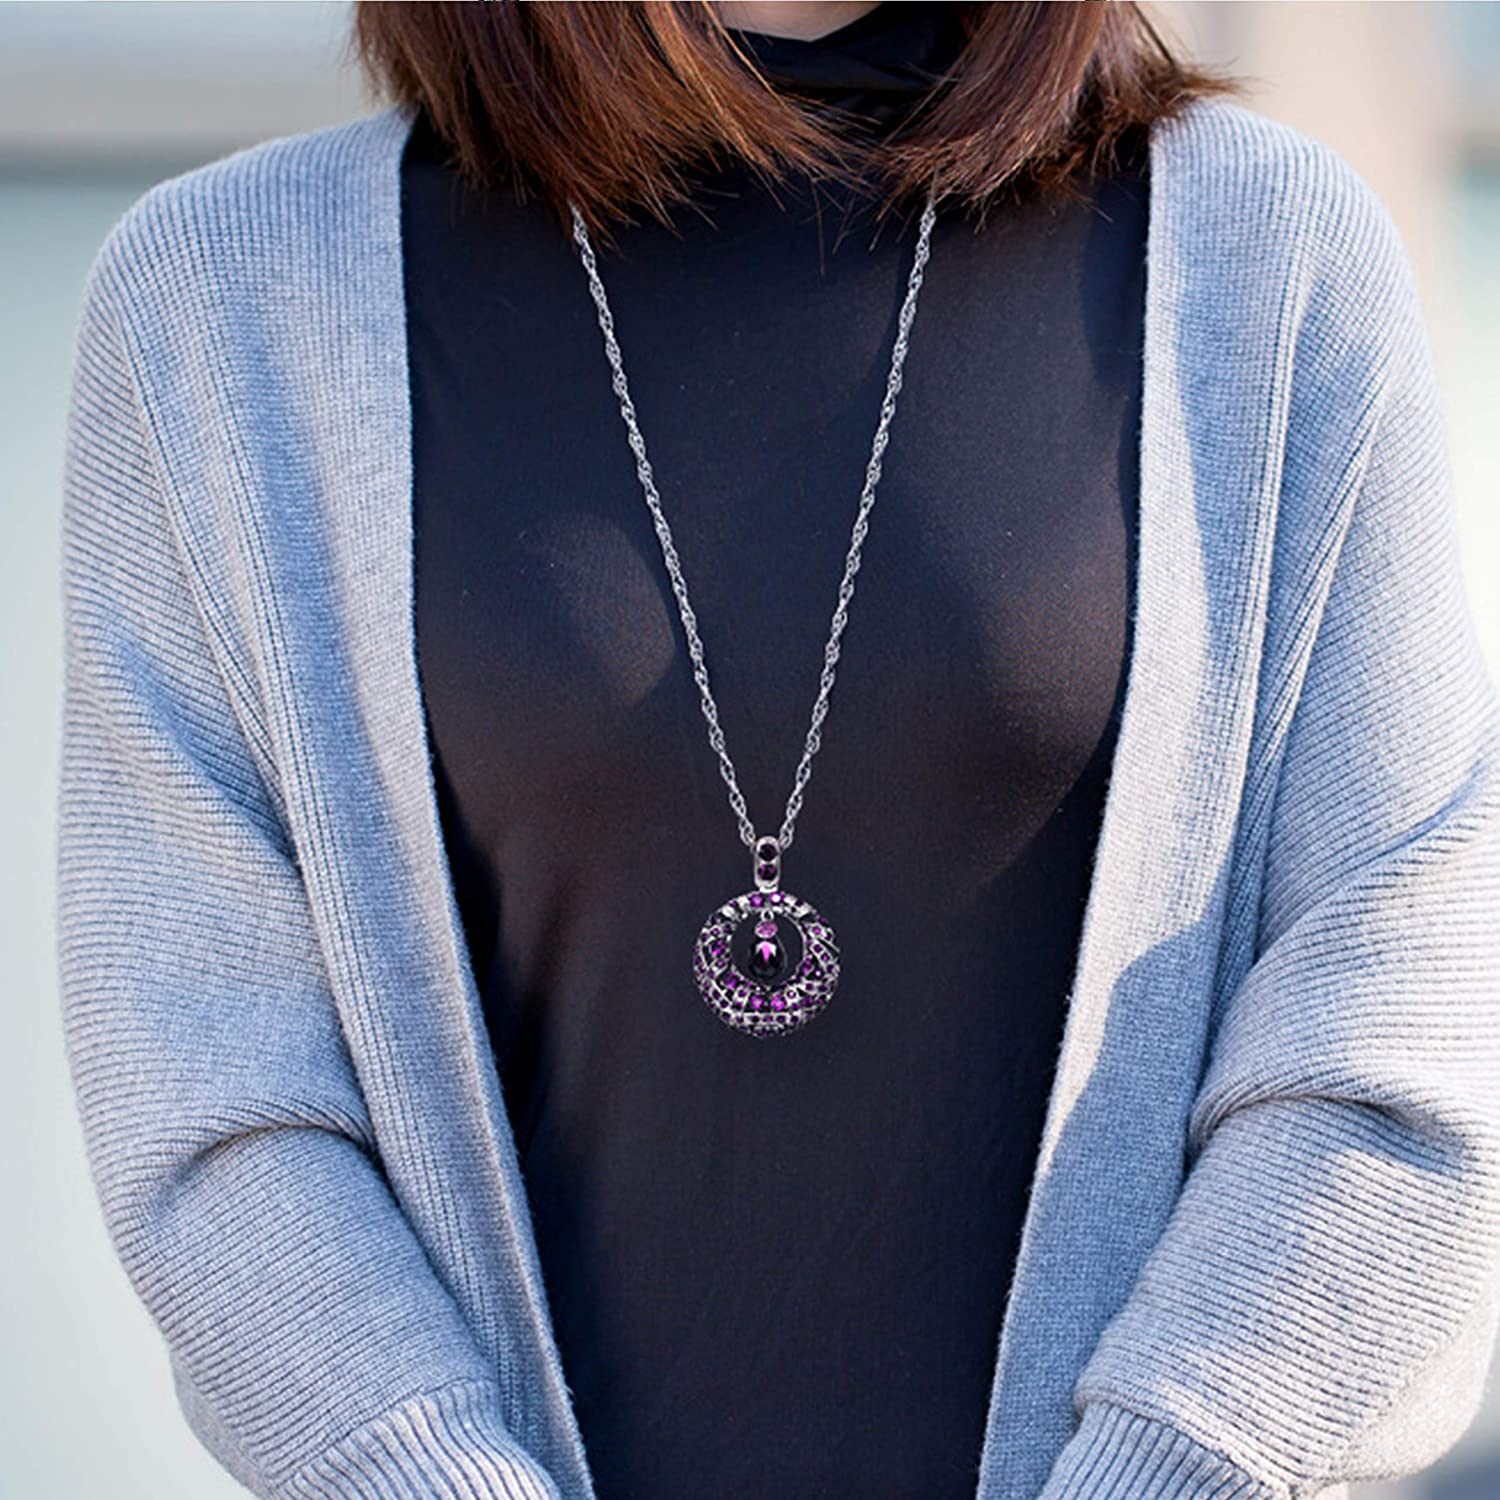 Great for Wife,Sisters,Friends,Daily Wear or Dating ZUOZUOYA Long Pendant Sweater Necklace Chain Vintage Water Drop Dark Blue,Purple Crystal Rhinestones Sweater Jewelry with Silver Tone